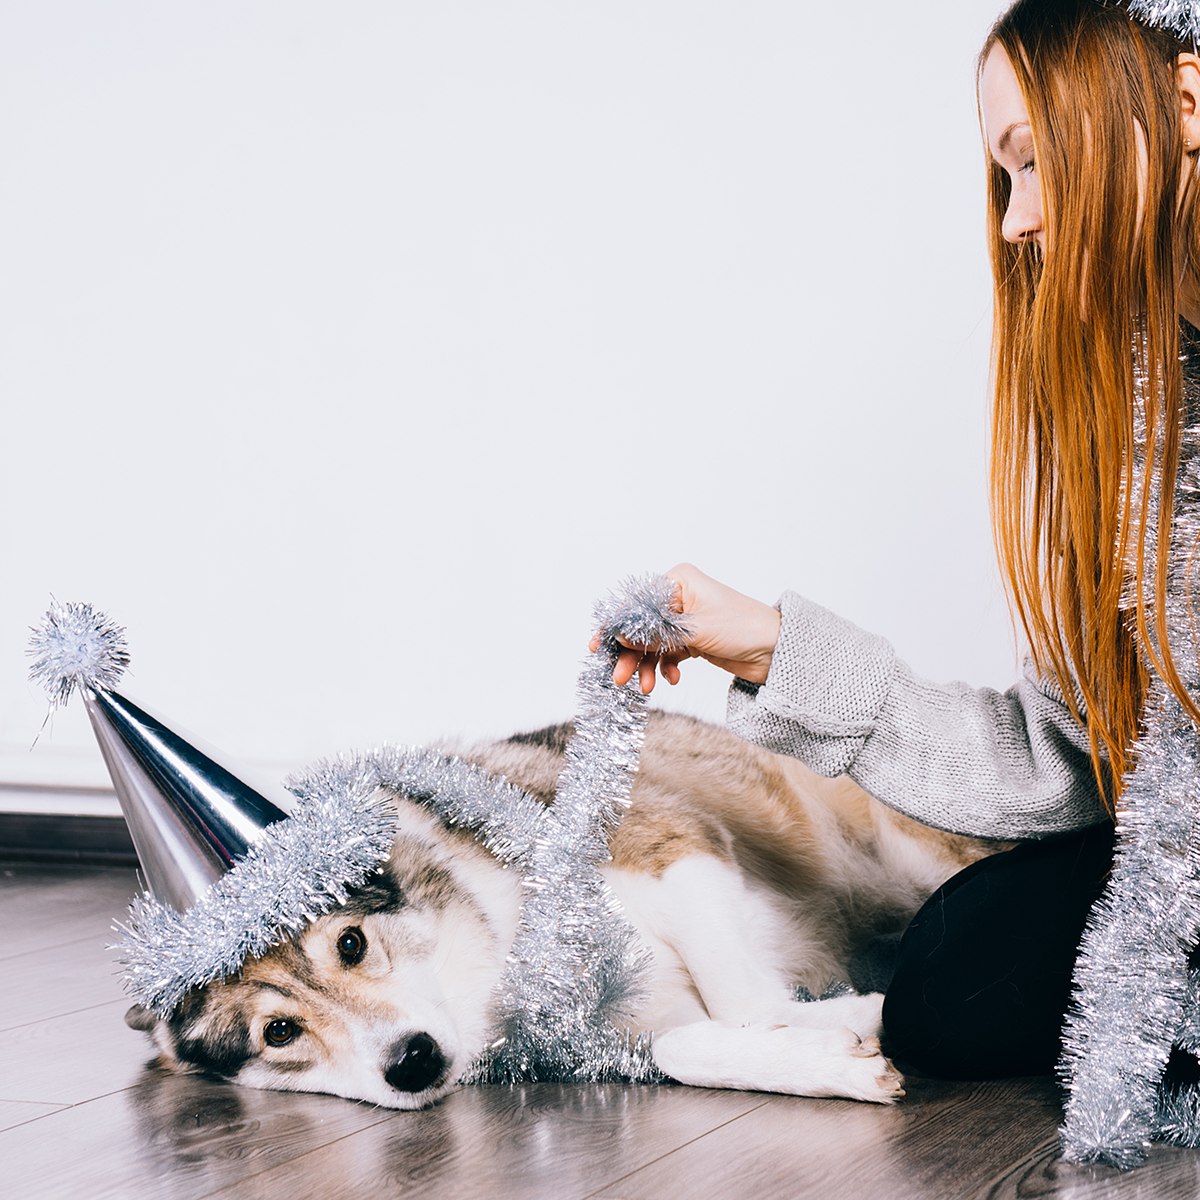 6 Simple Changes to Improve Your Dog's Health in 2020